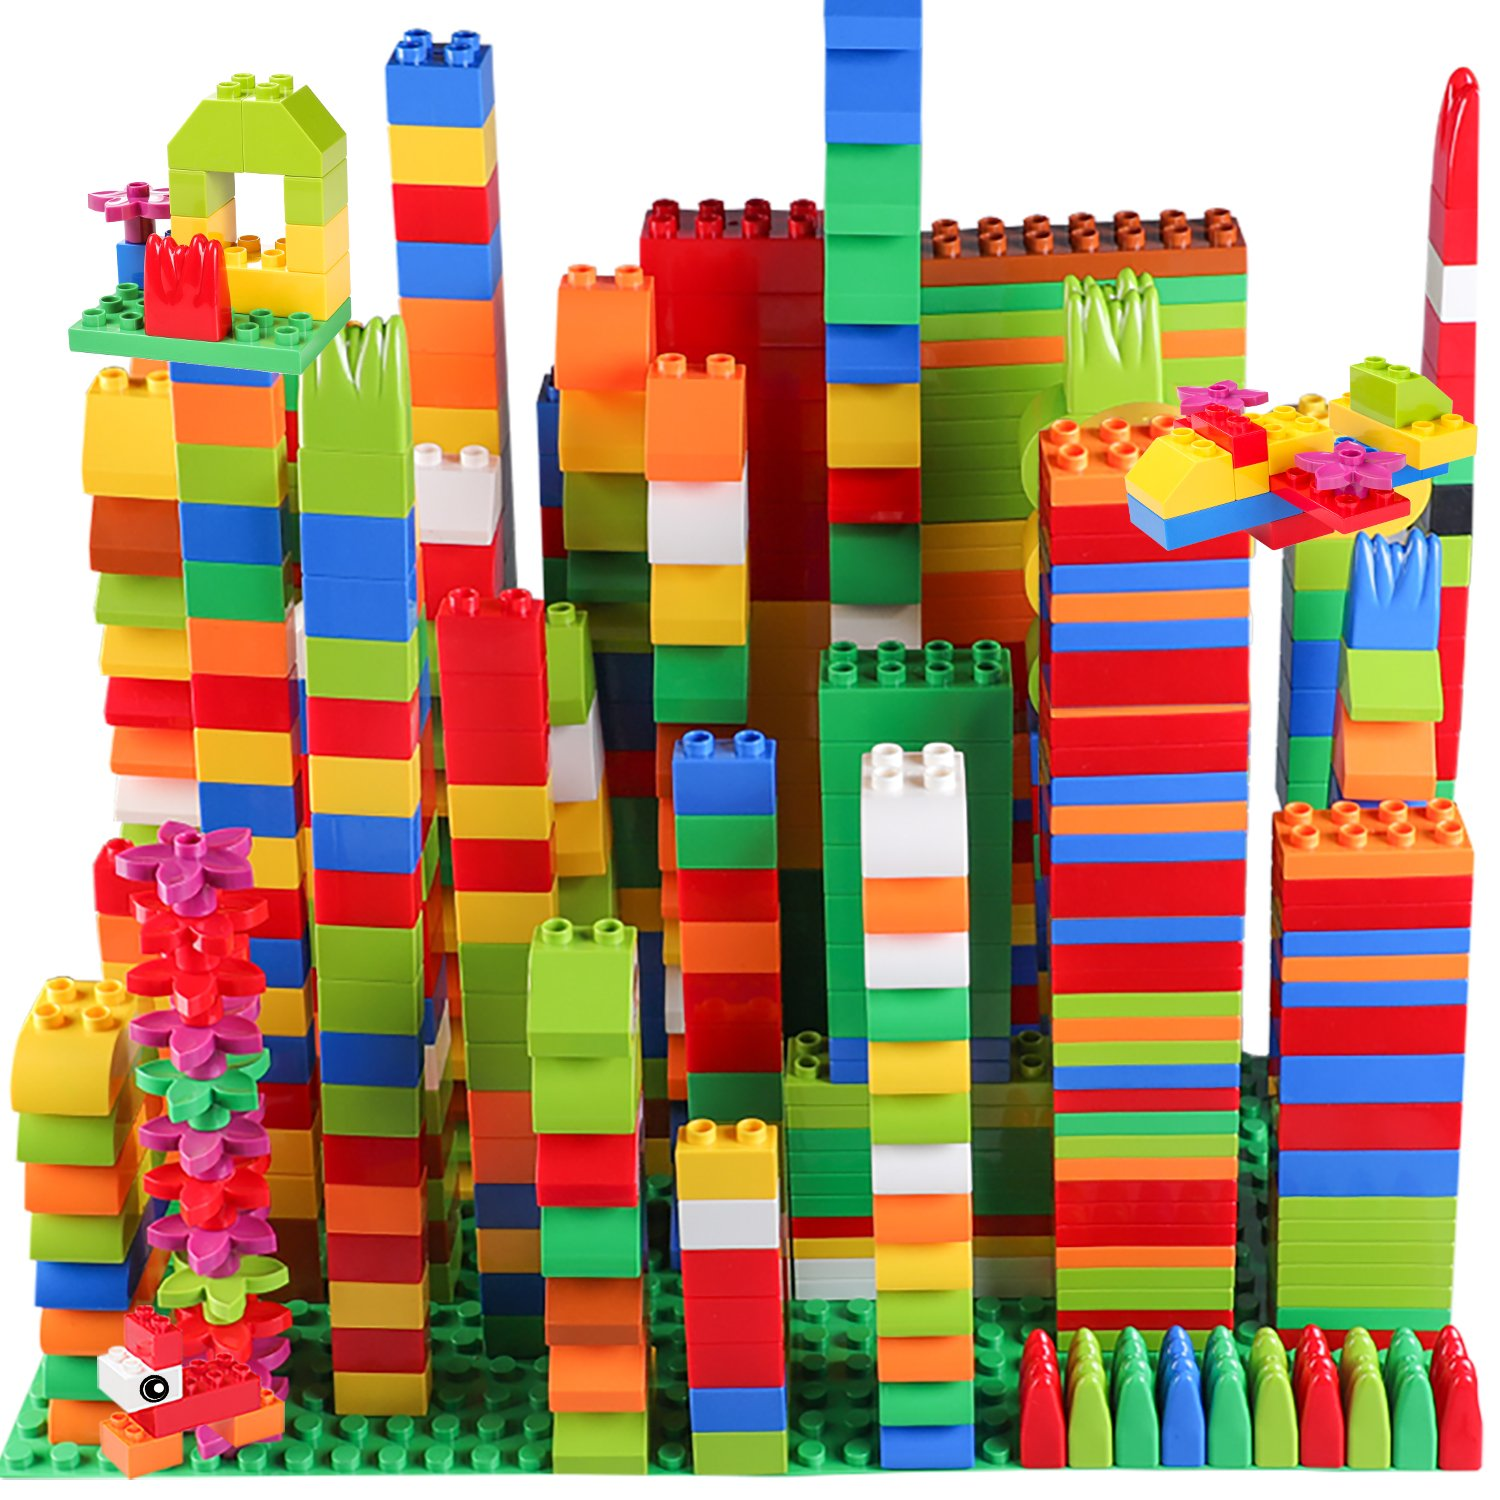 burgkidz Big Building Block Sets - 214 Pieces Toddler Educational Toy Classic Large Sizes Building Blocks Bricks - 13 Fun Shapes and Storage Bucket - Compatible with All Major Brands by burgkidz (Image #7)